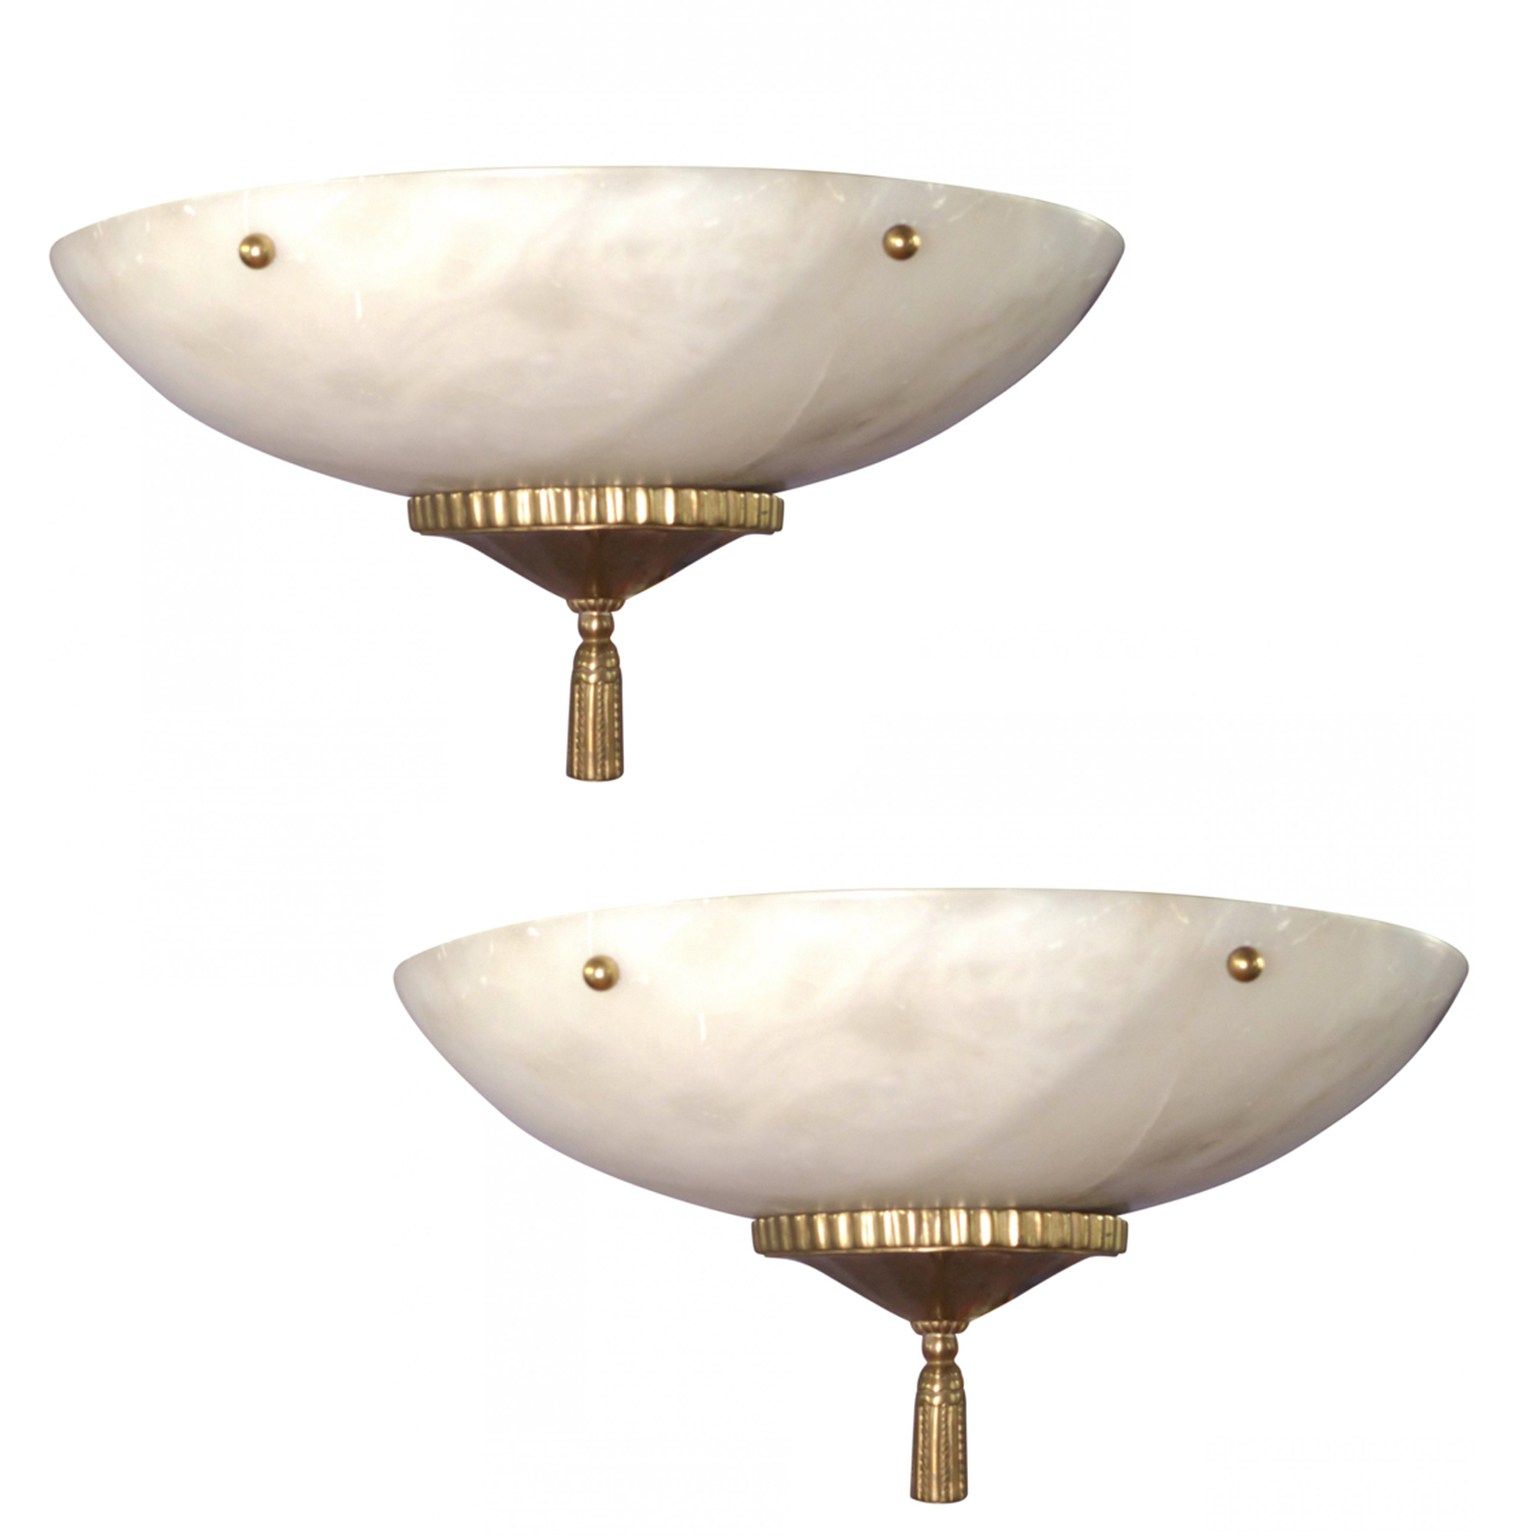 Large bowl Sconces made from alabaster with brass hardware.